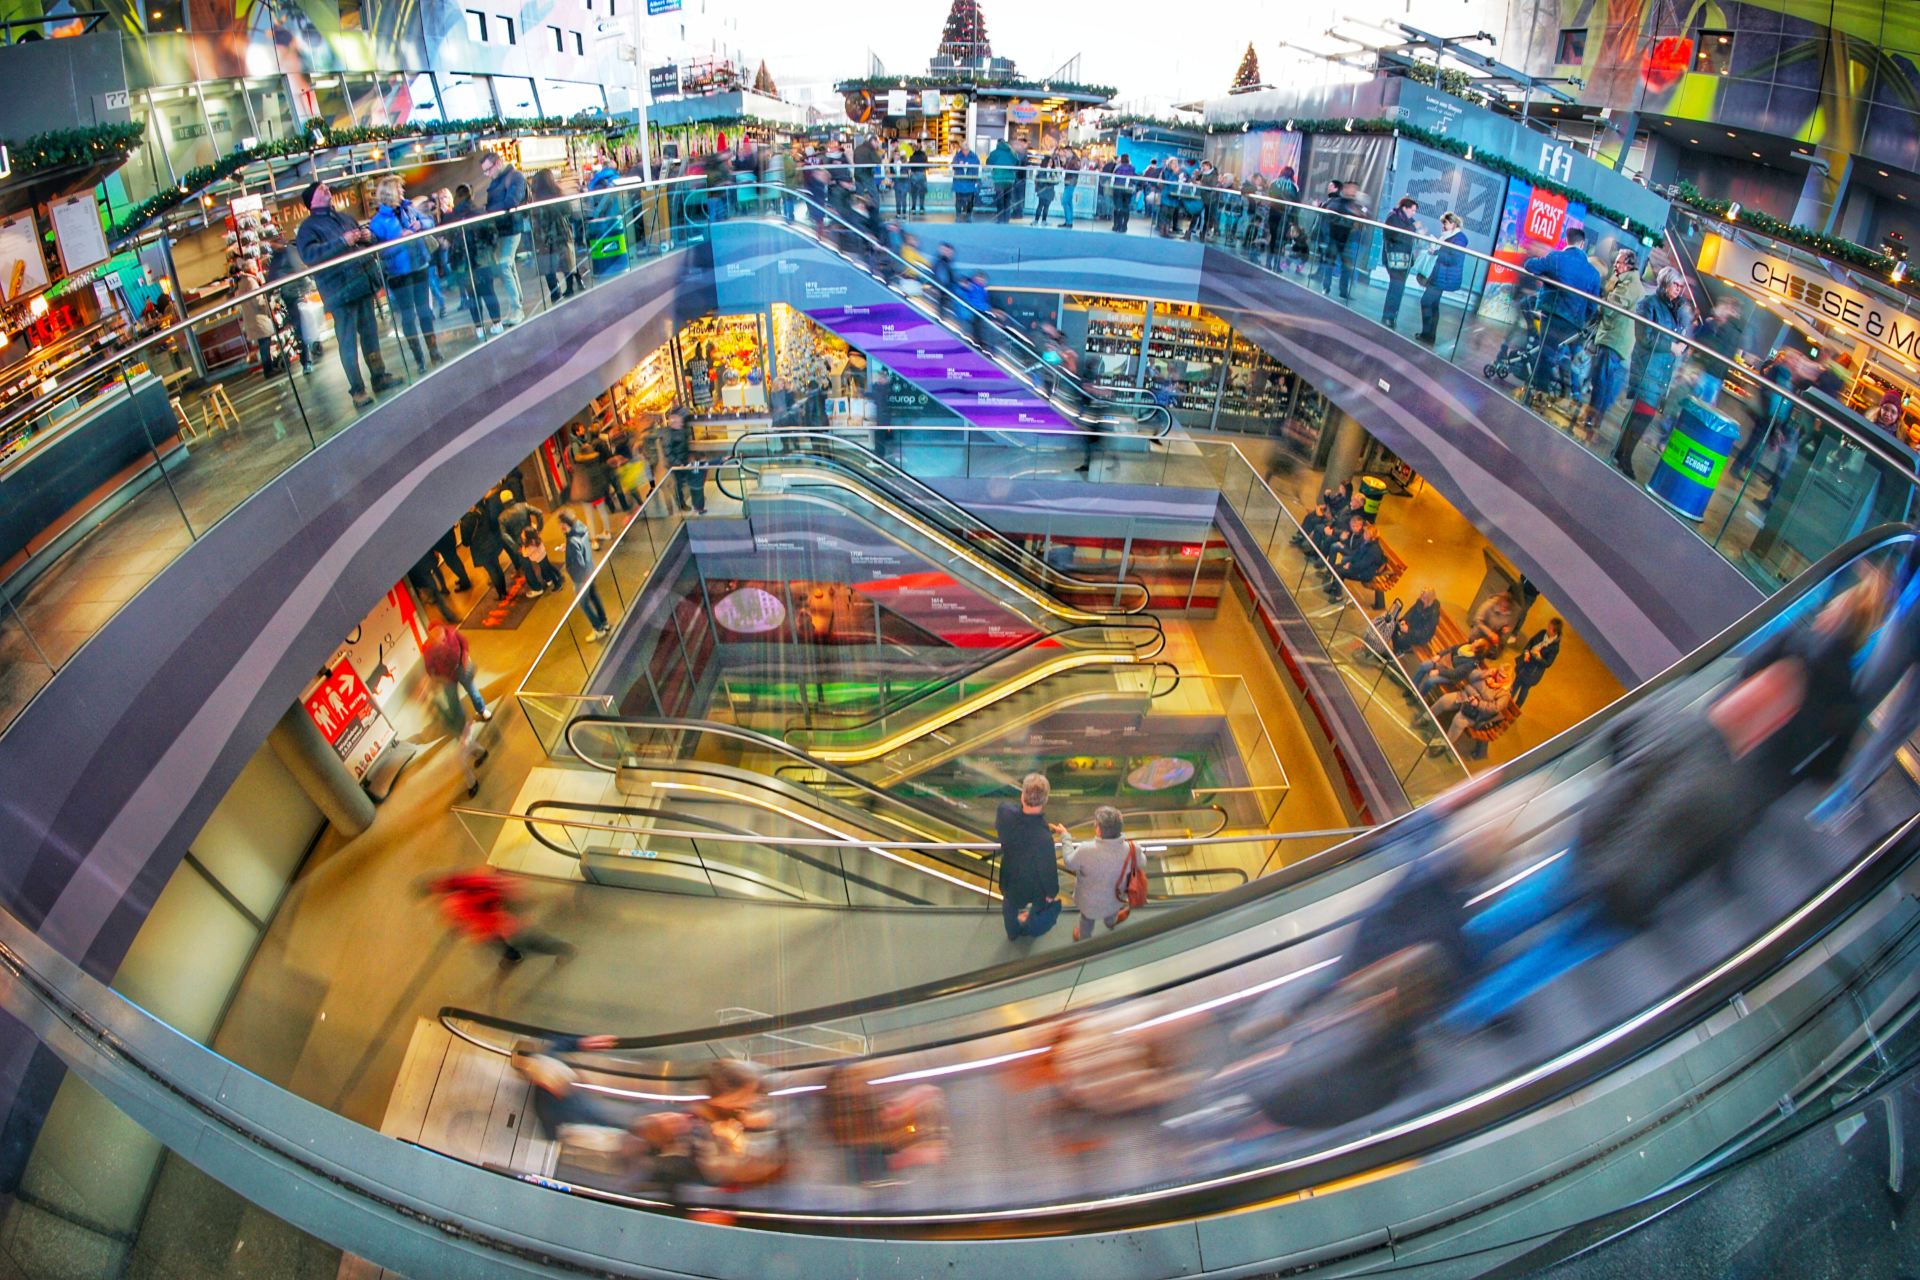 BLE 5.1 aims to improve indoor navigation technologies